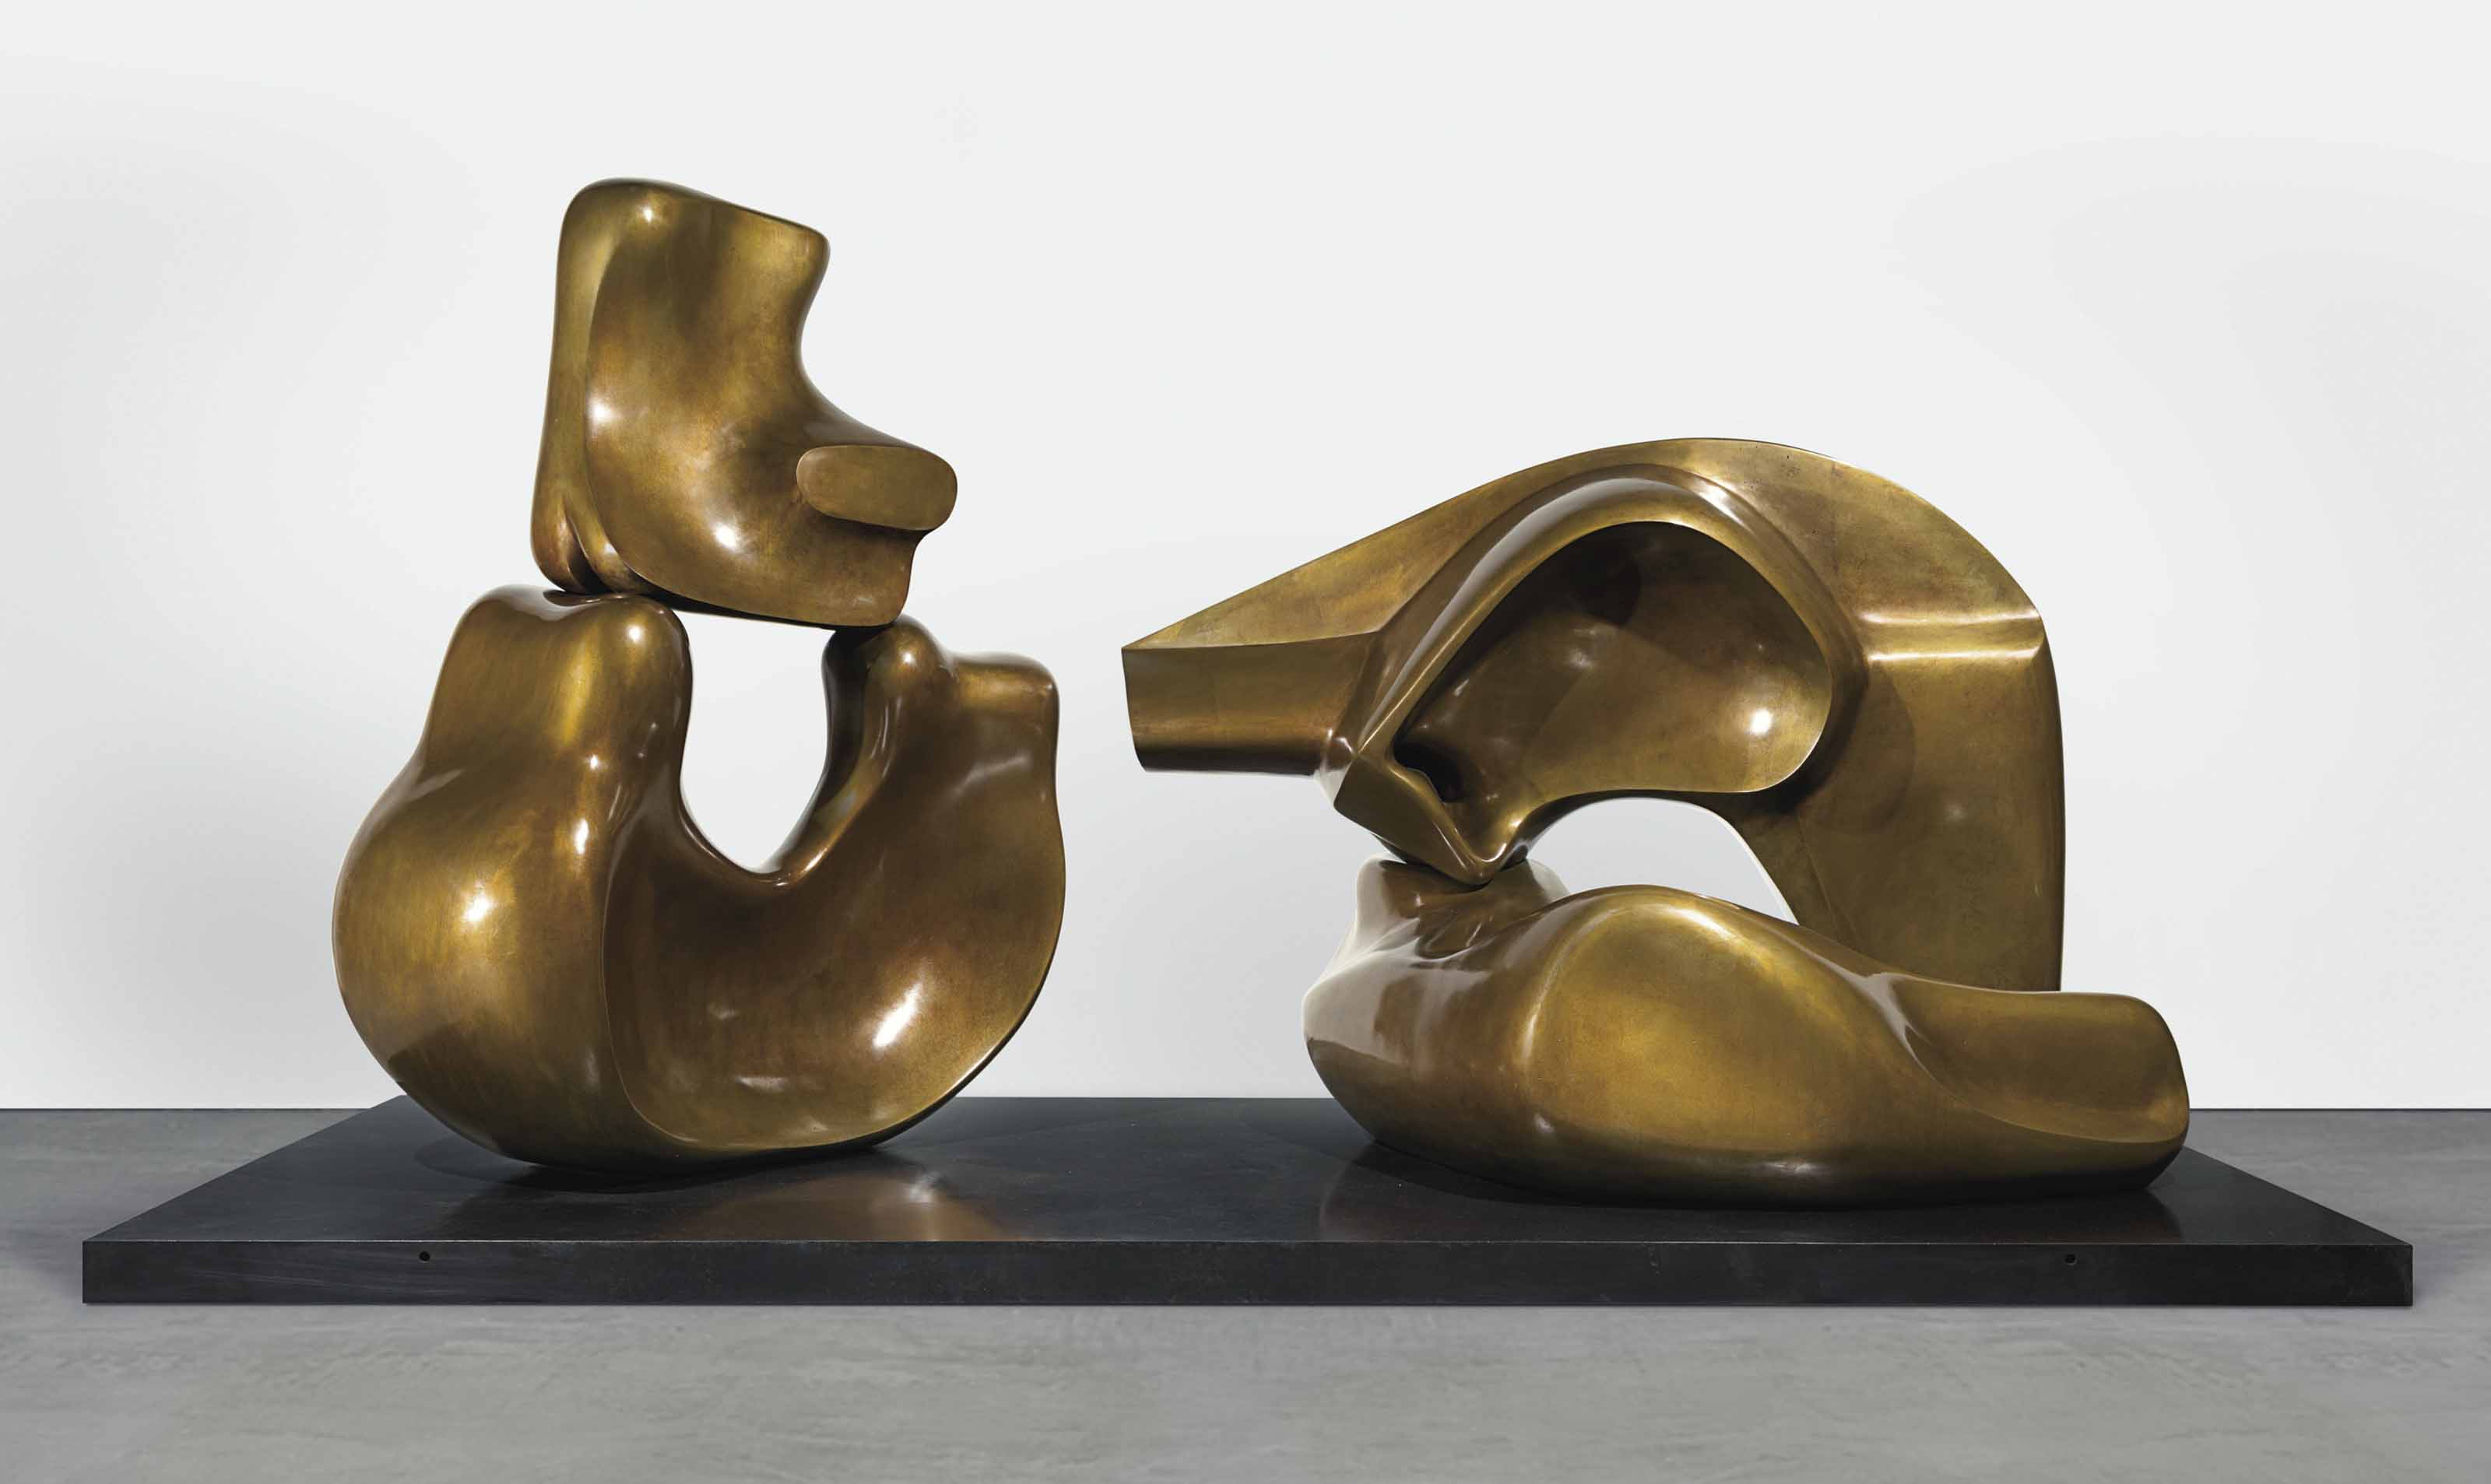 Large Four Piece Reclining Figure